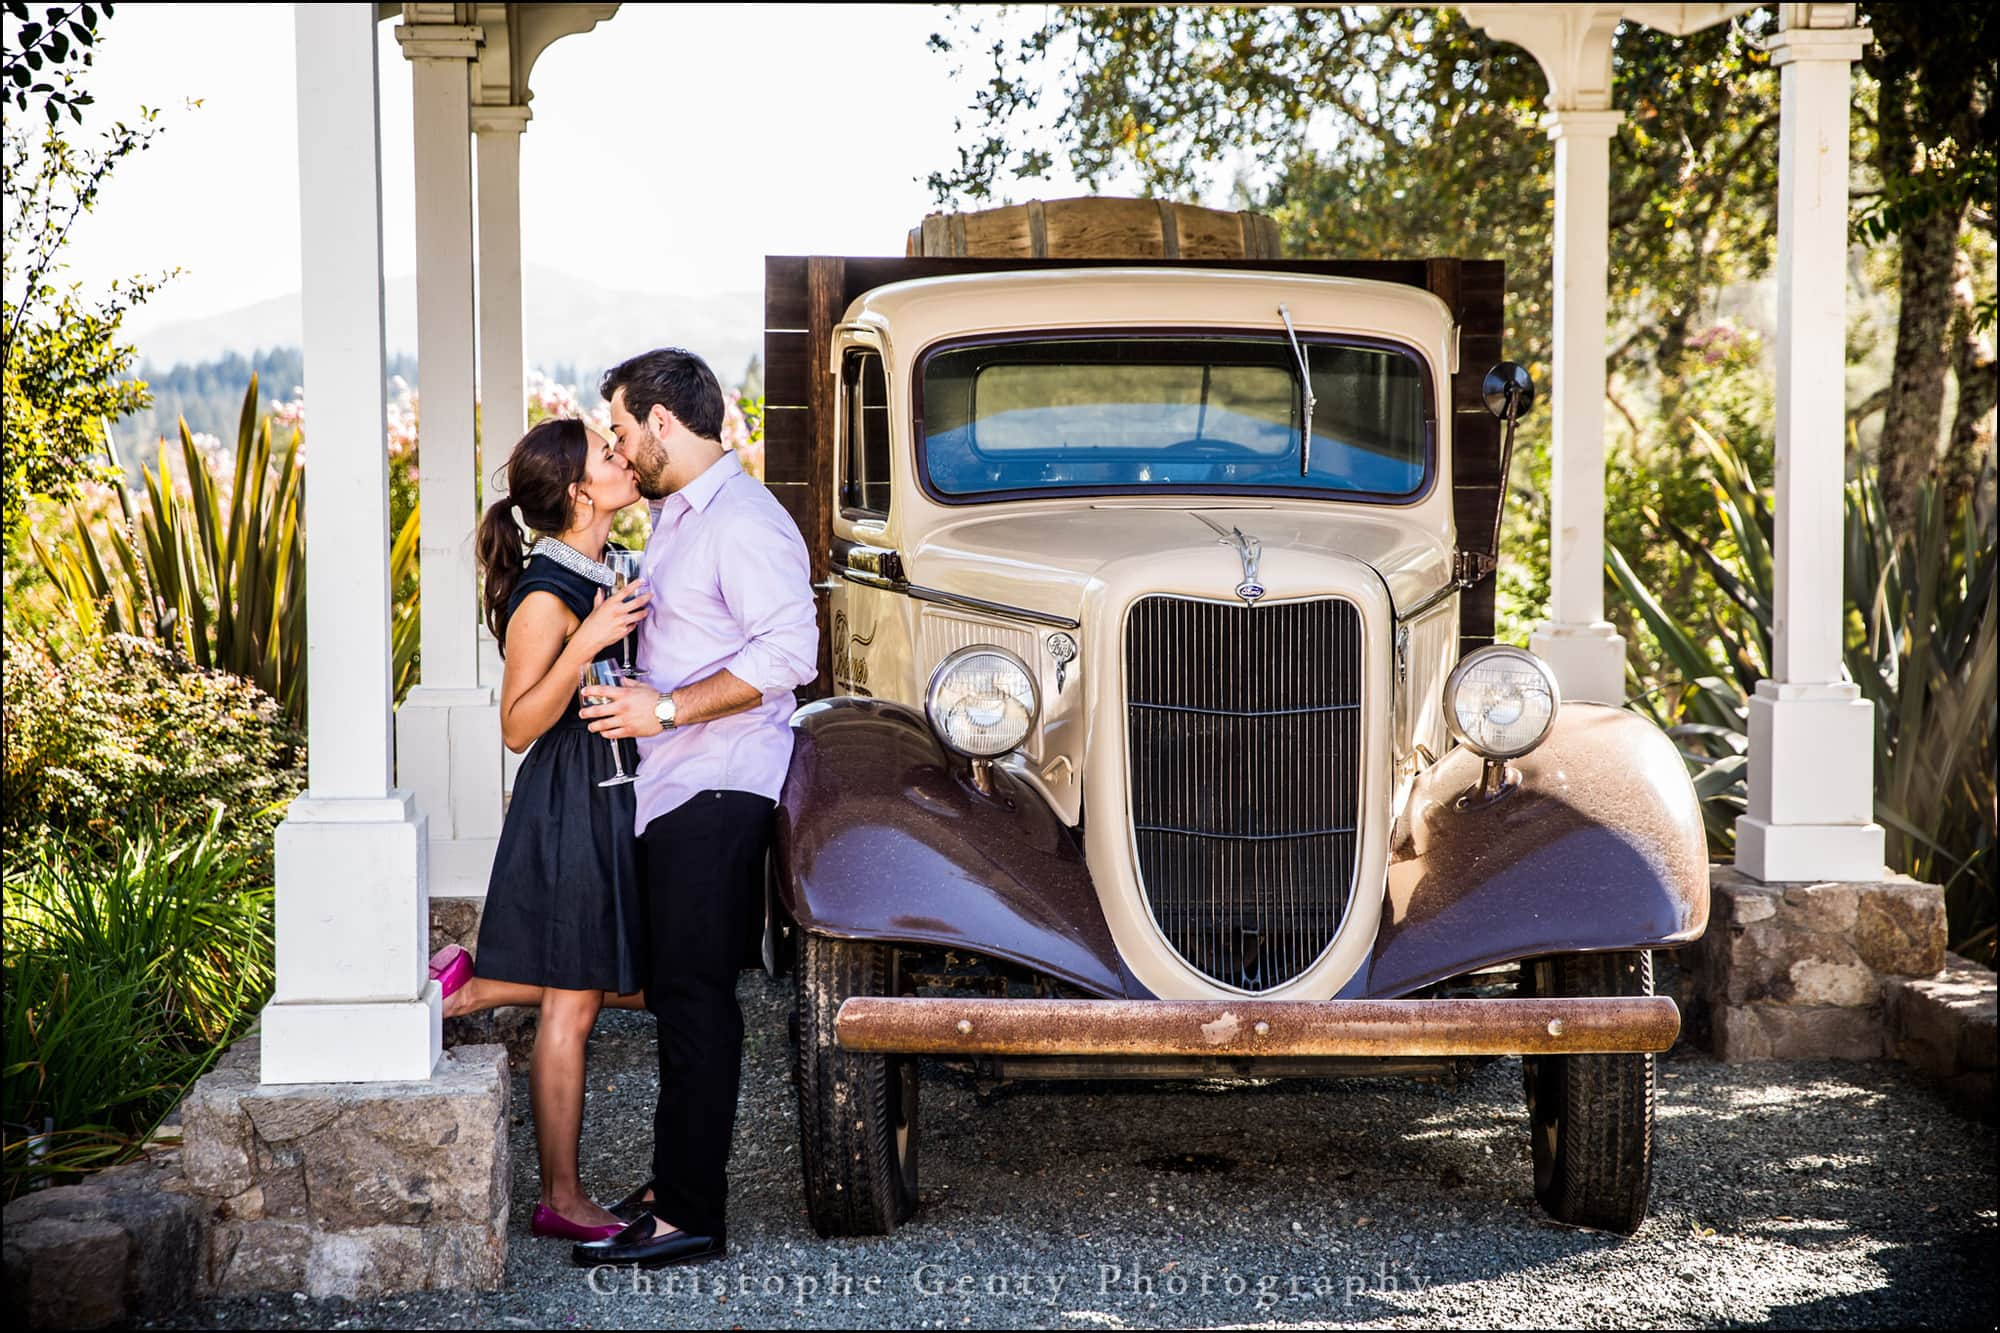 Mariage Proposal Photography in The Napa Valley - Bremer Winery